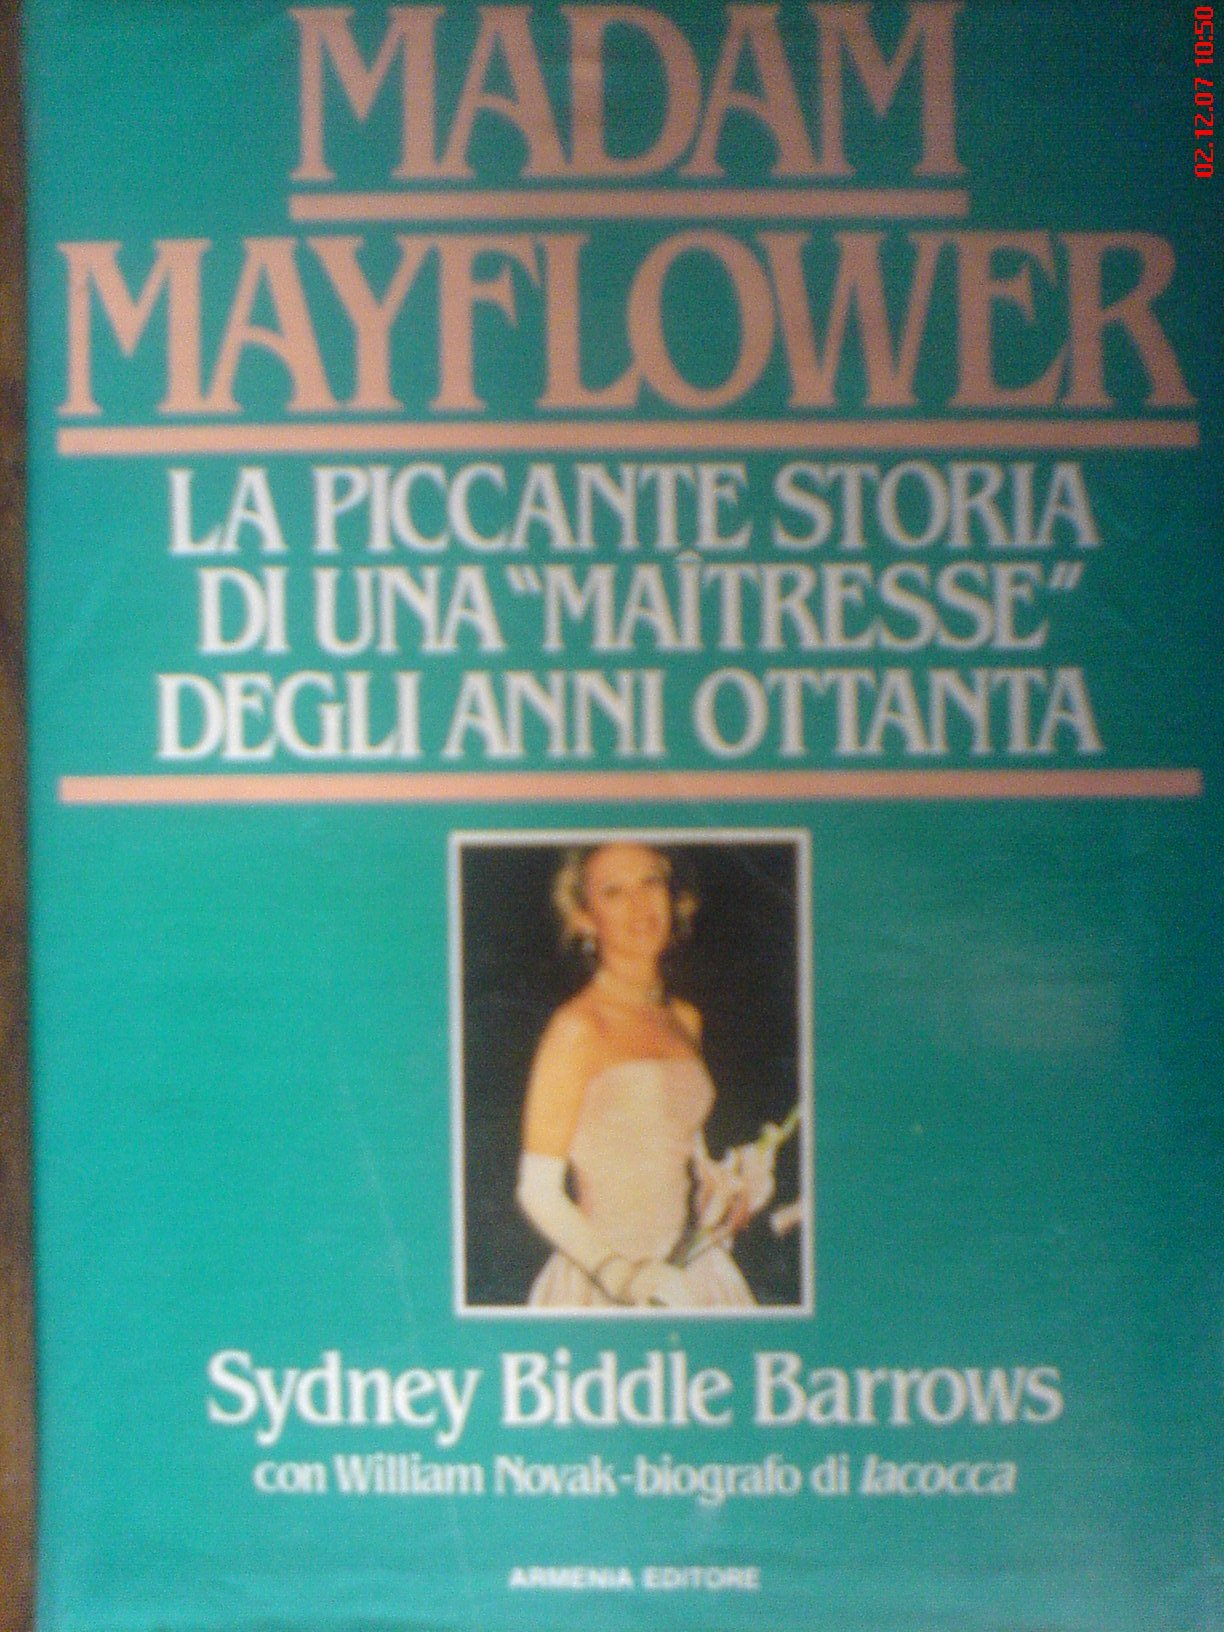 Madam Mayflower